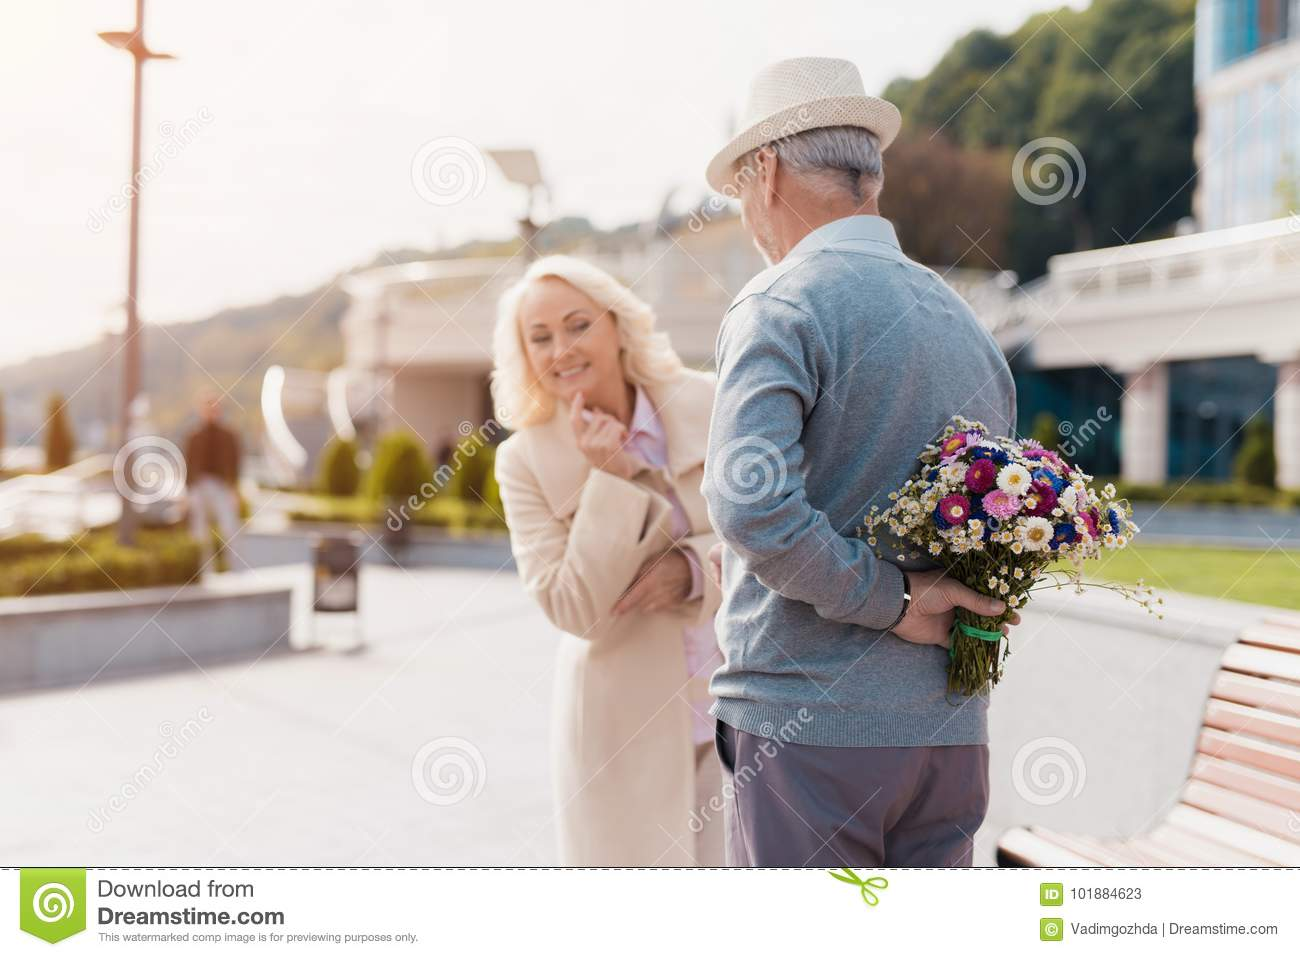 An elderly man is holding a bouquet of flowers behind back a woman an elderly man is holding a bouquet of flowers behind back a woman came on izmirmasajfo